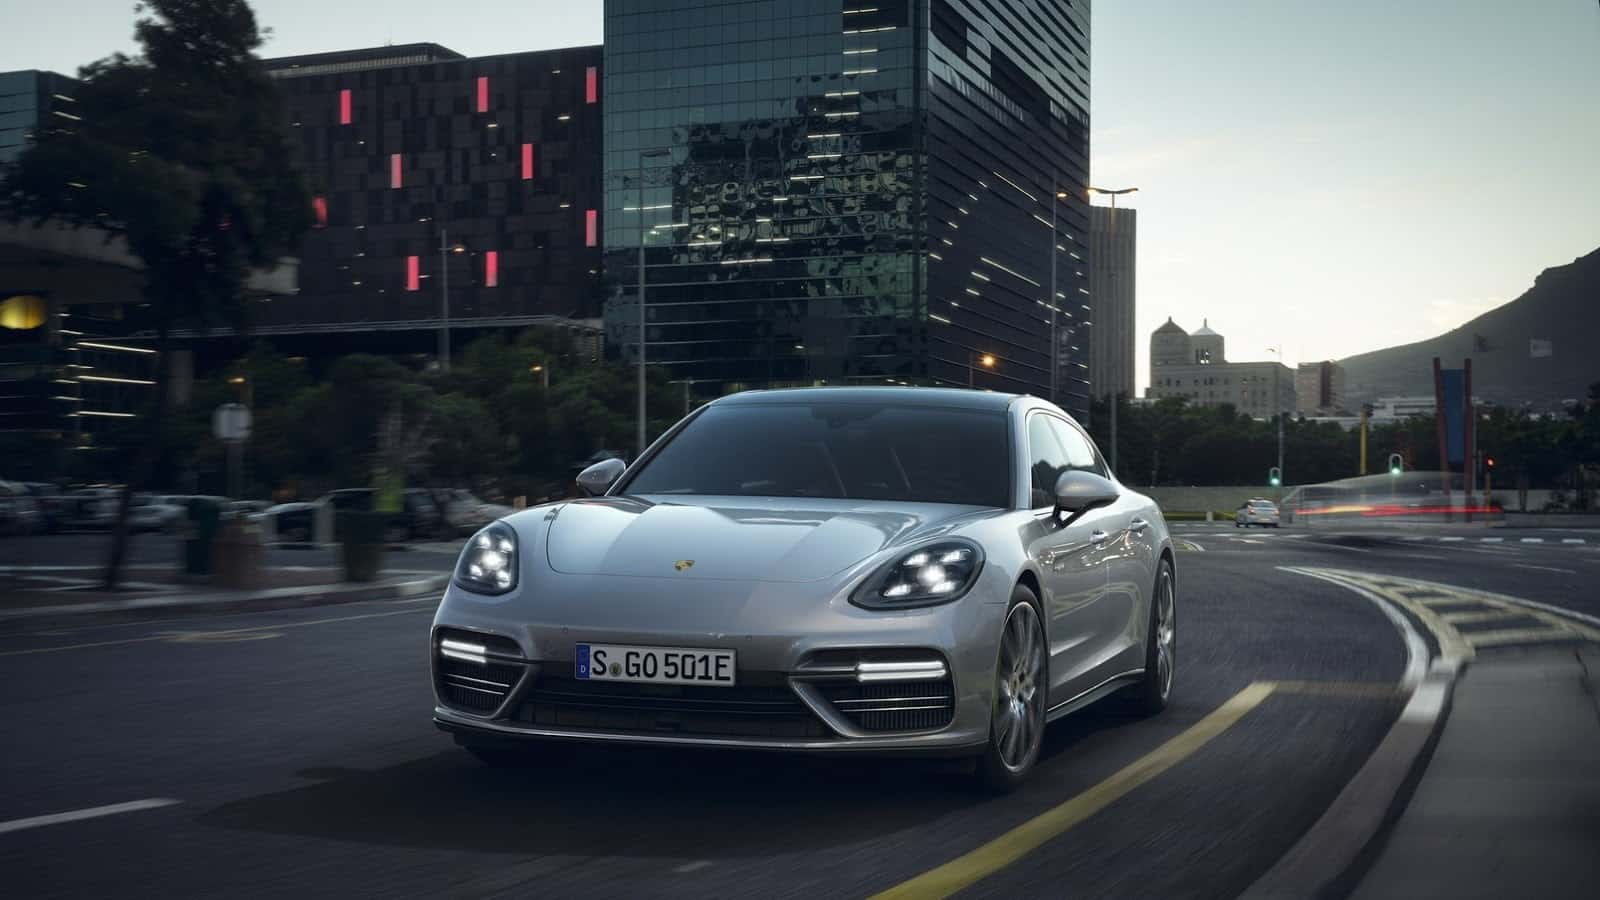 Porsche porsche e hybrid : The Porsche Panamera Turbo S E-Hybrid Is Green & Super Fast